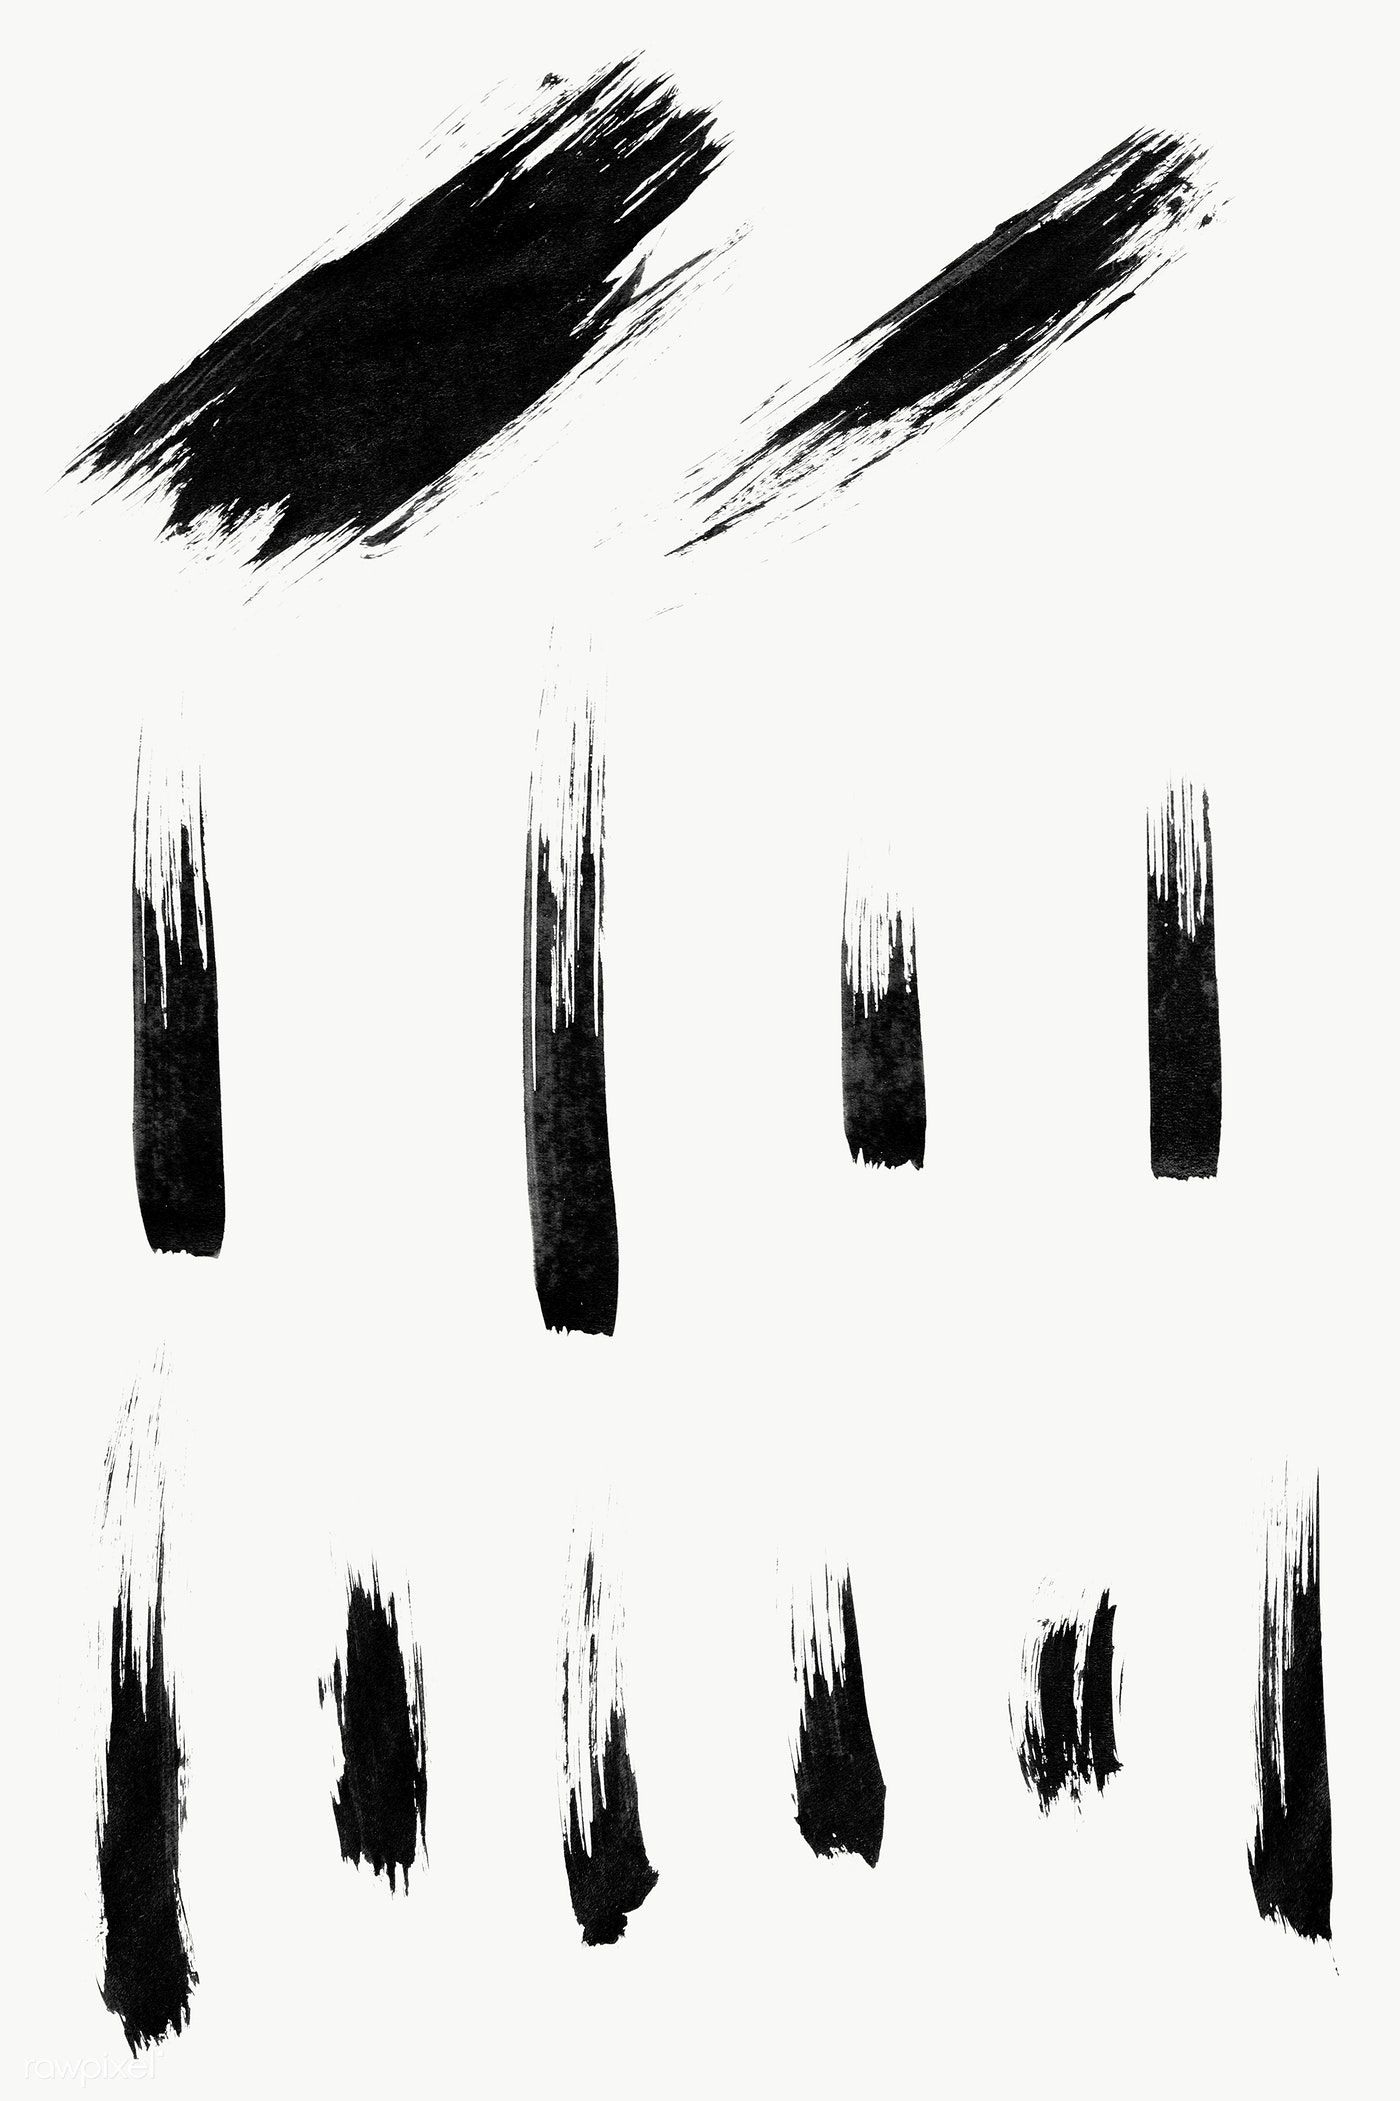 Abstract Black Brush Stroke Set Transparent Png Free Image By